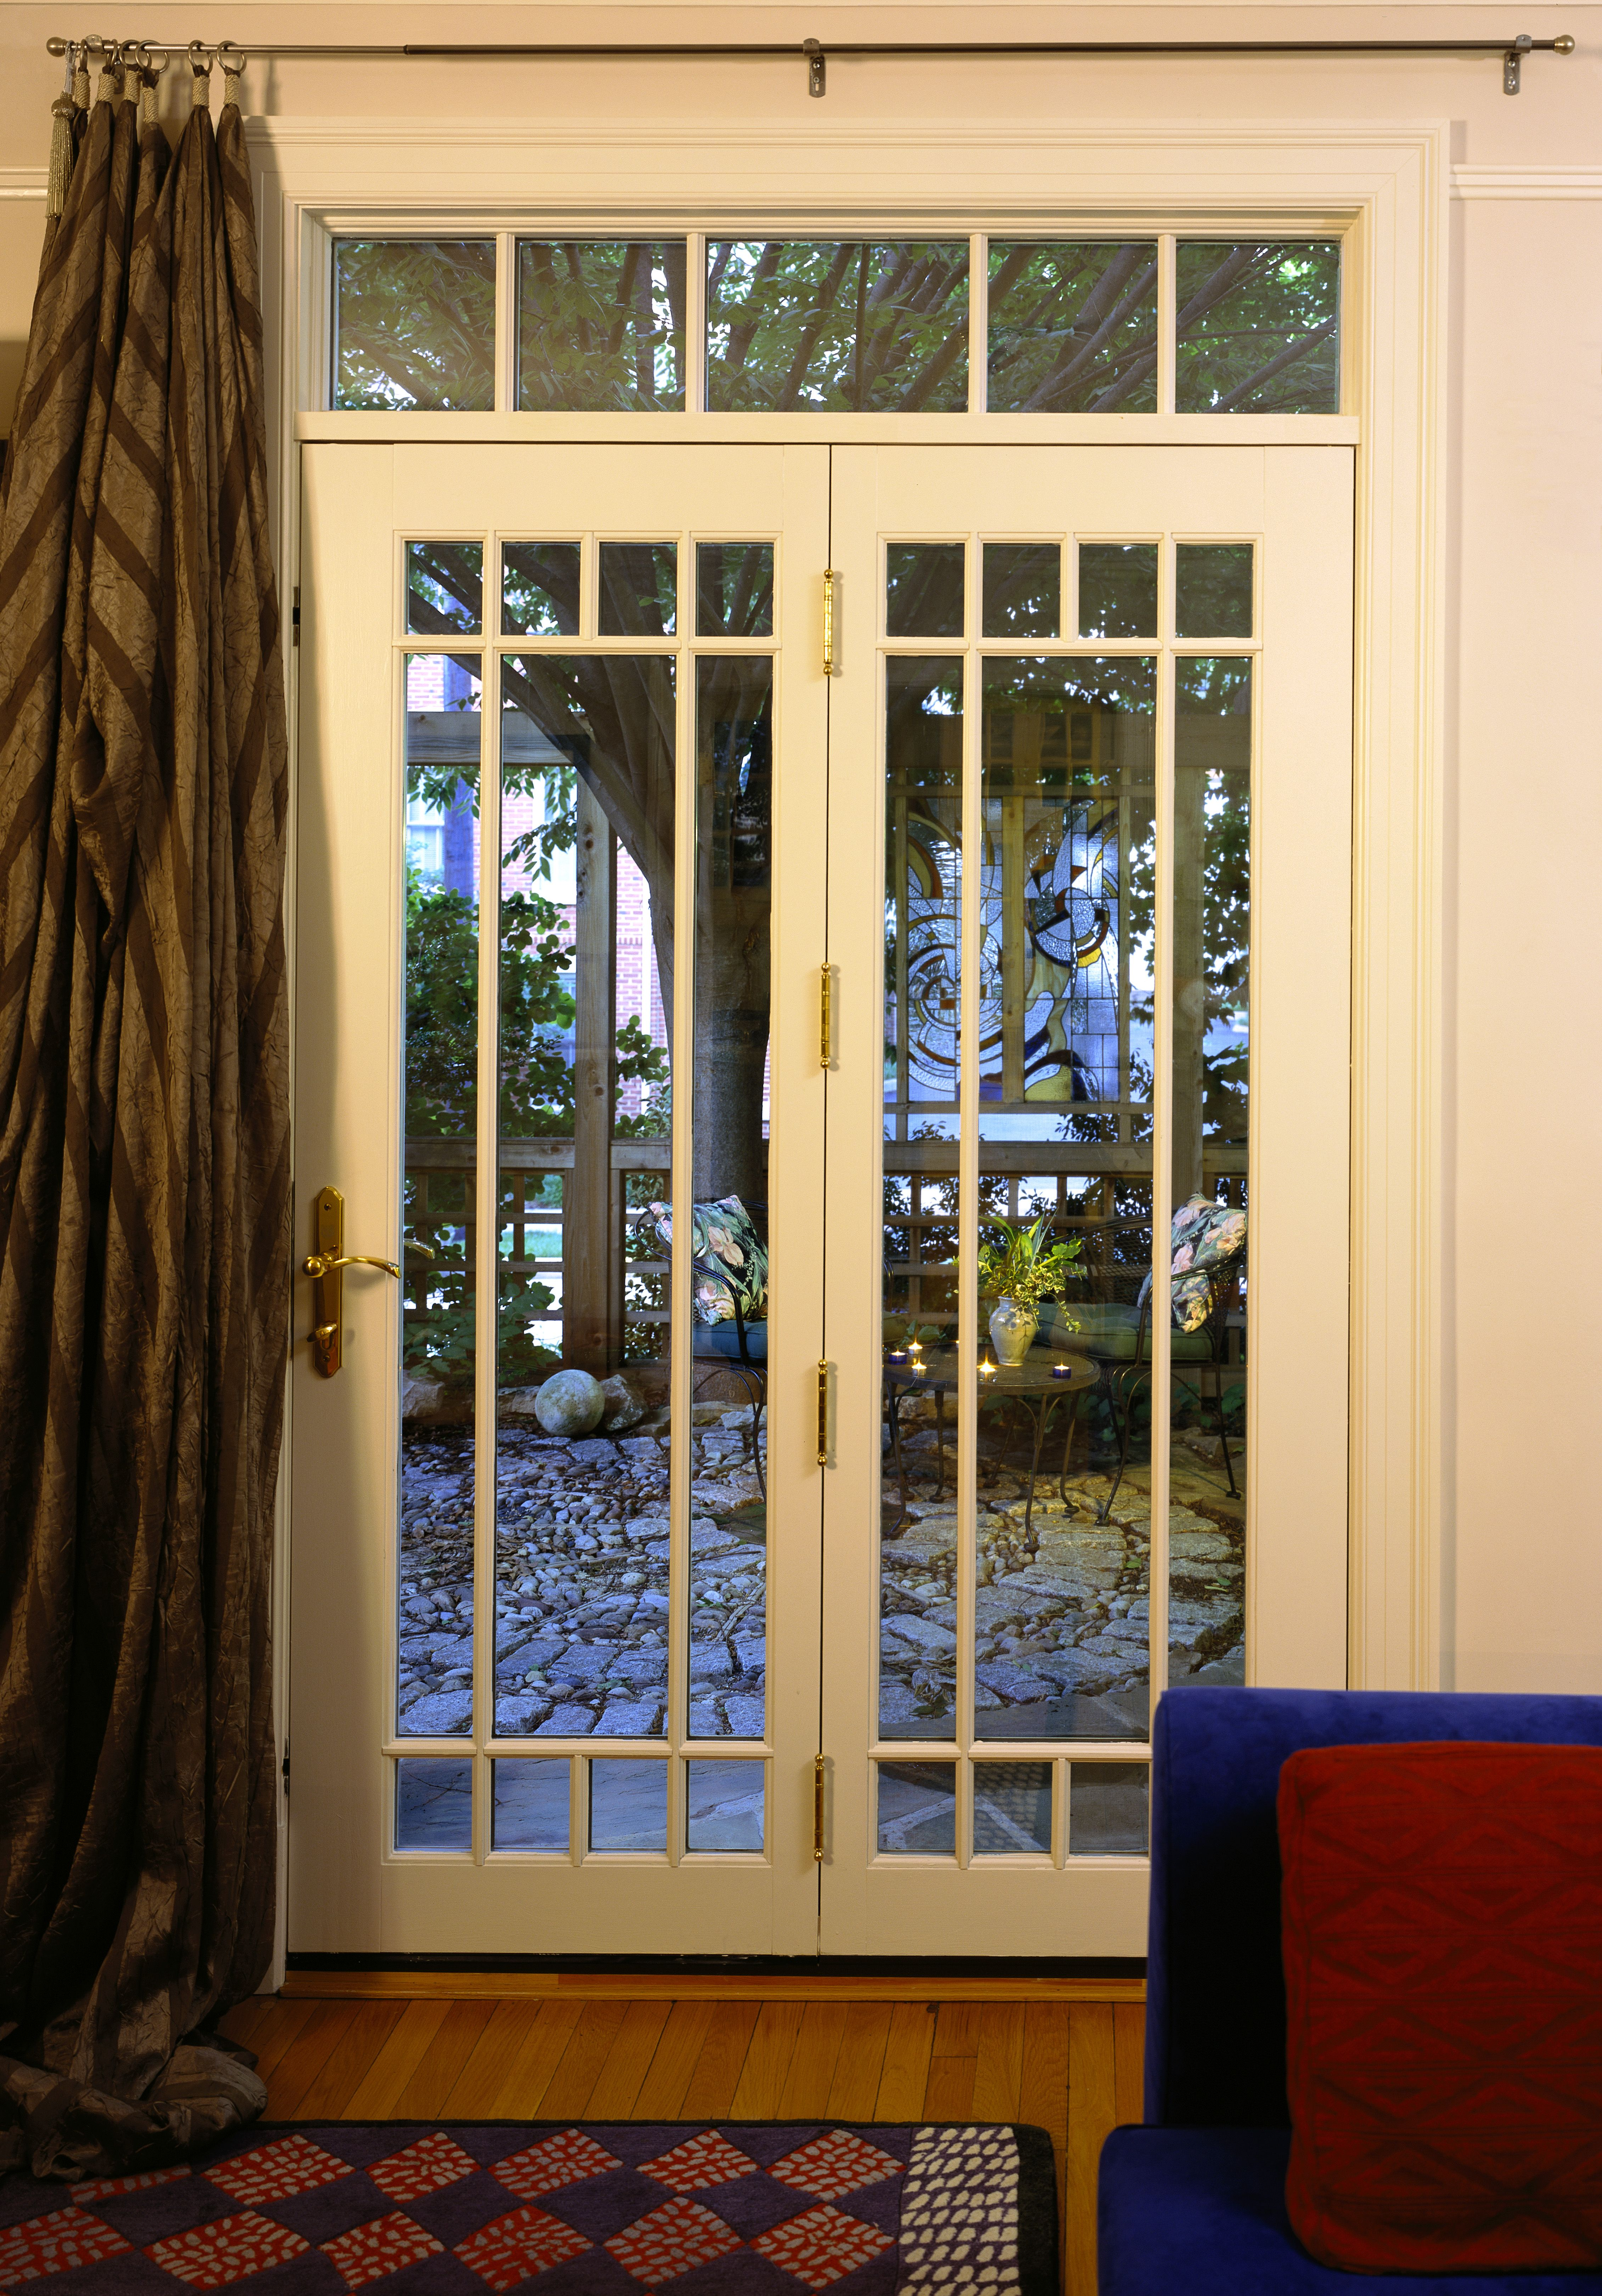 Read about creating an #indoor-outdoor connection here. This is like the French doors to my apartment.